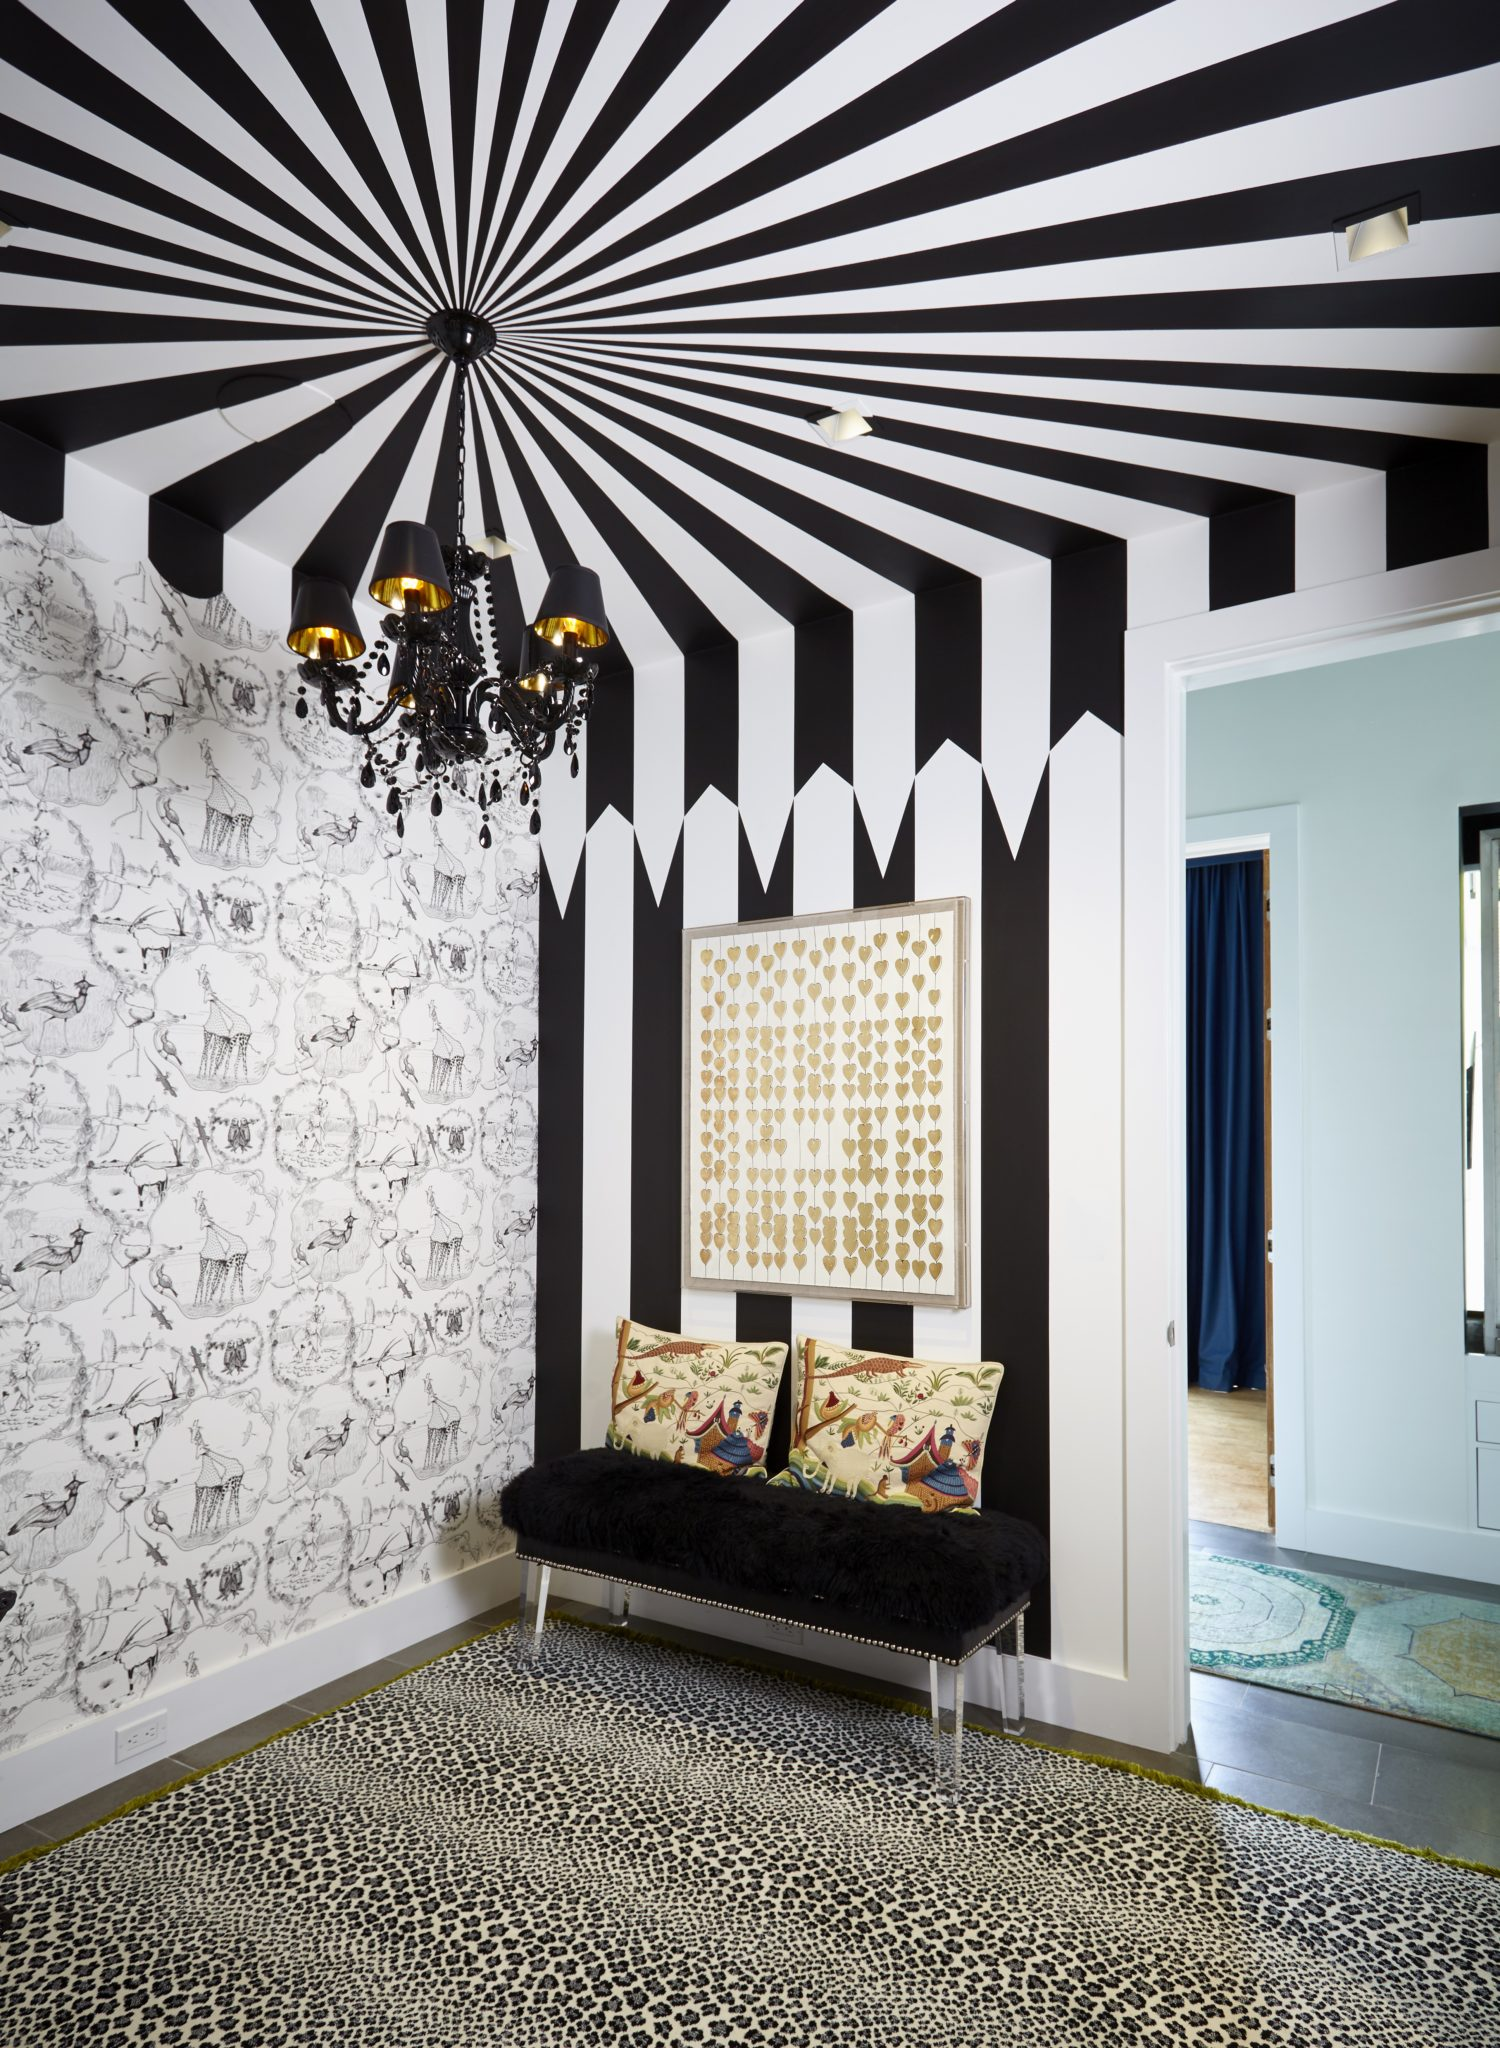 51 Standout Ceiling Treatments Chairish Blog